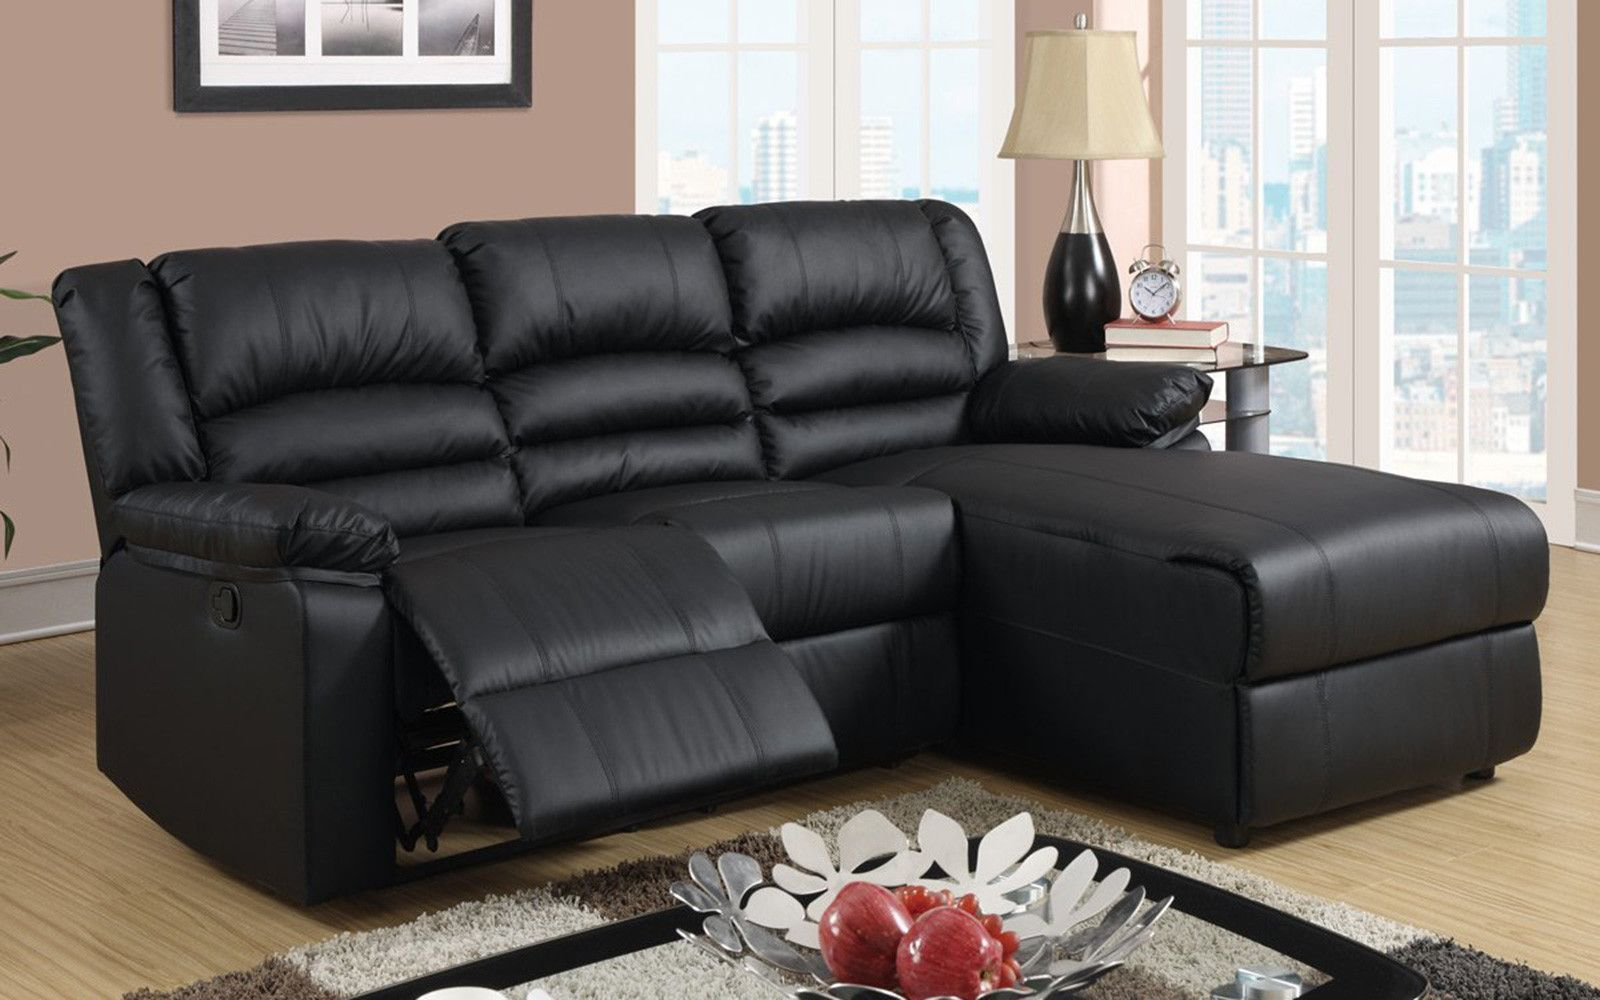 Modern Bonded Leather Small Space Sectional Reclining Sofa With